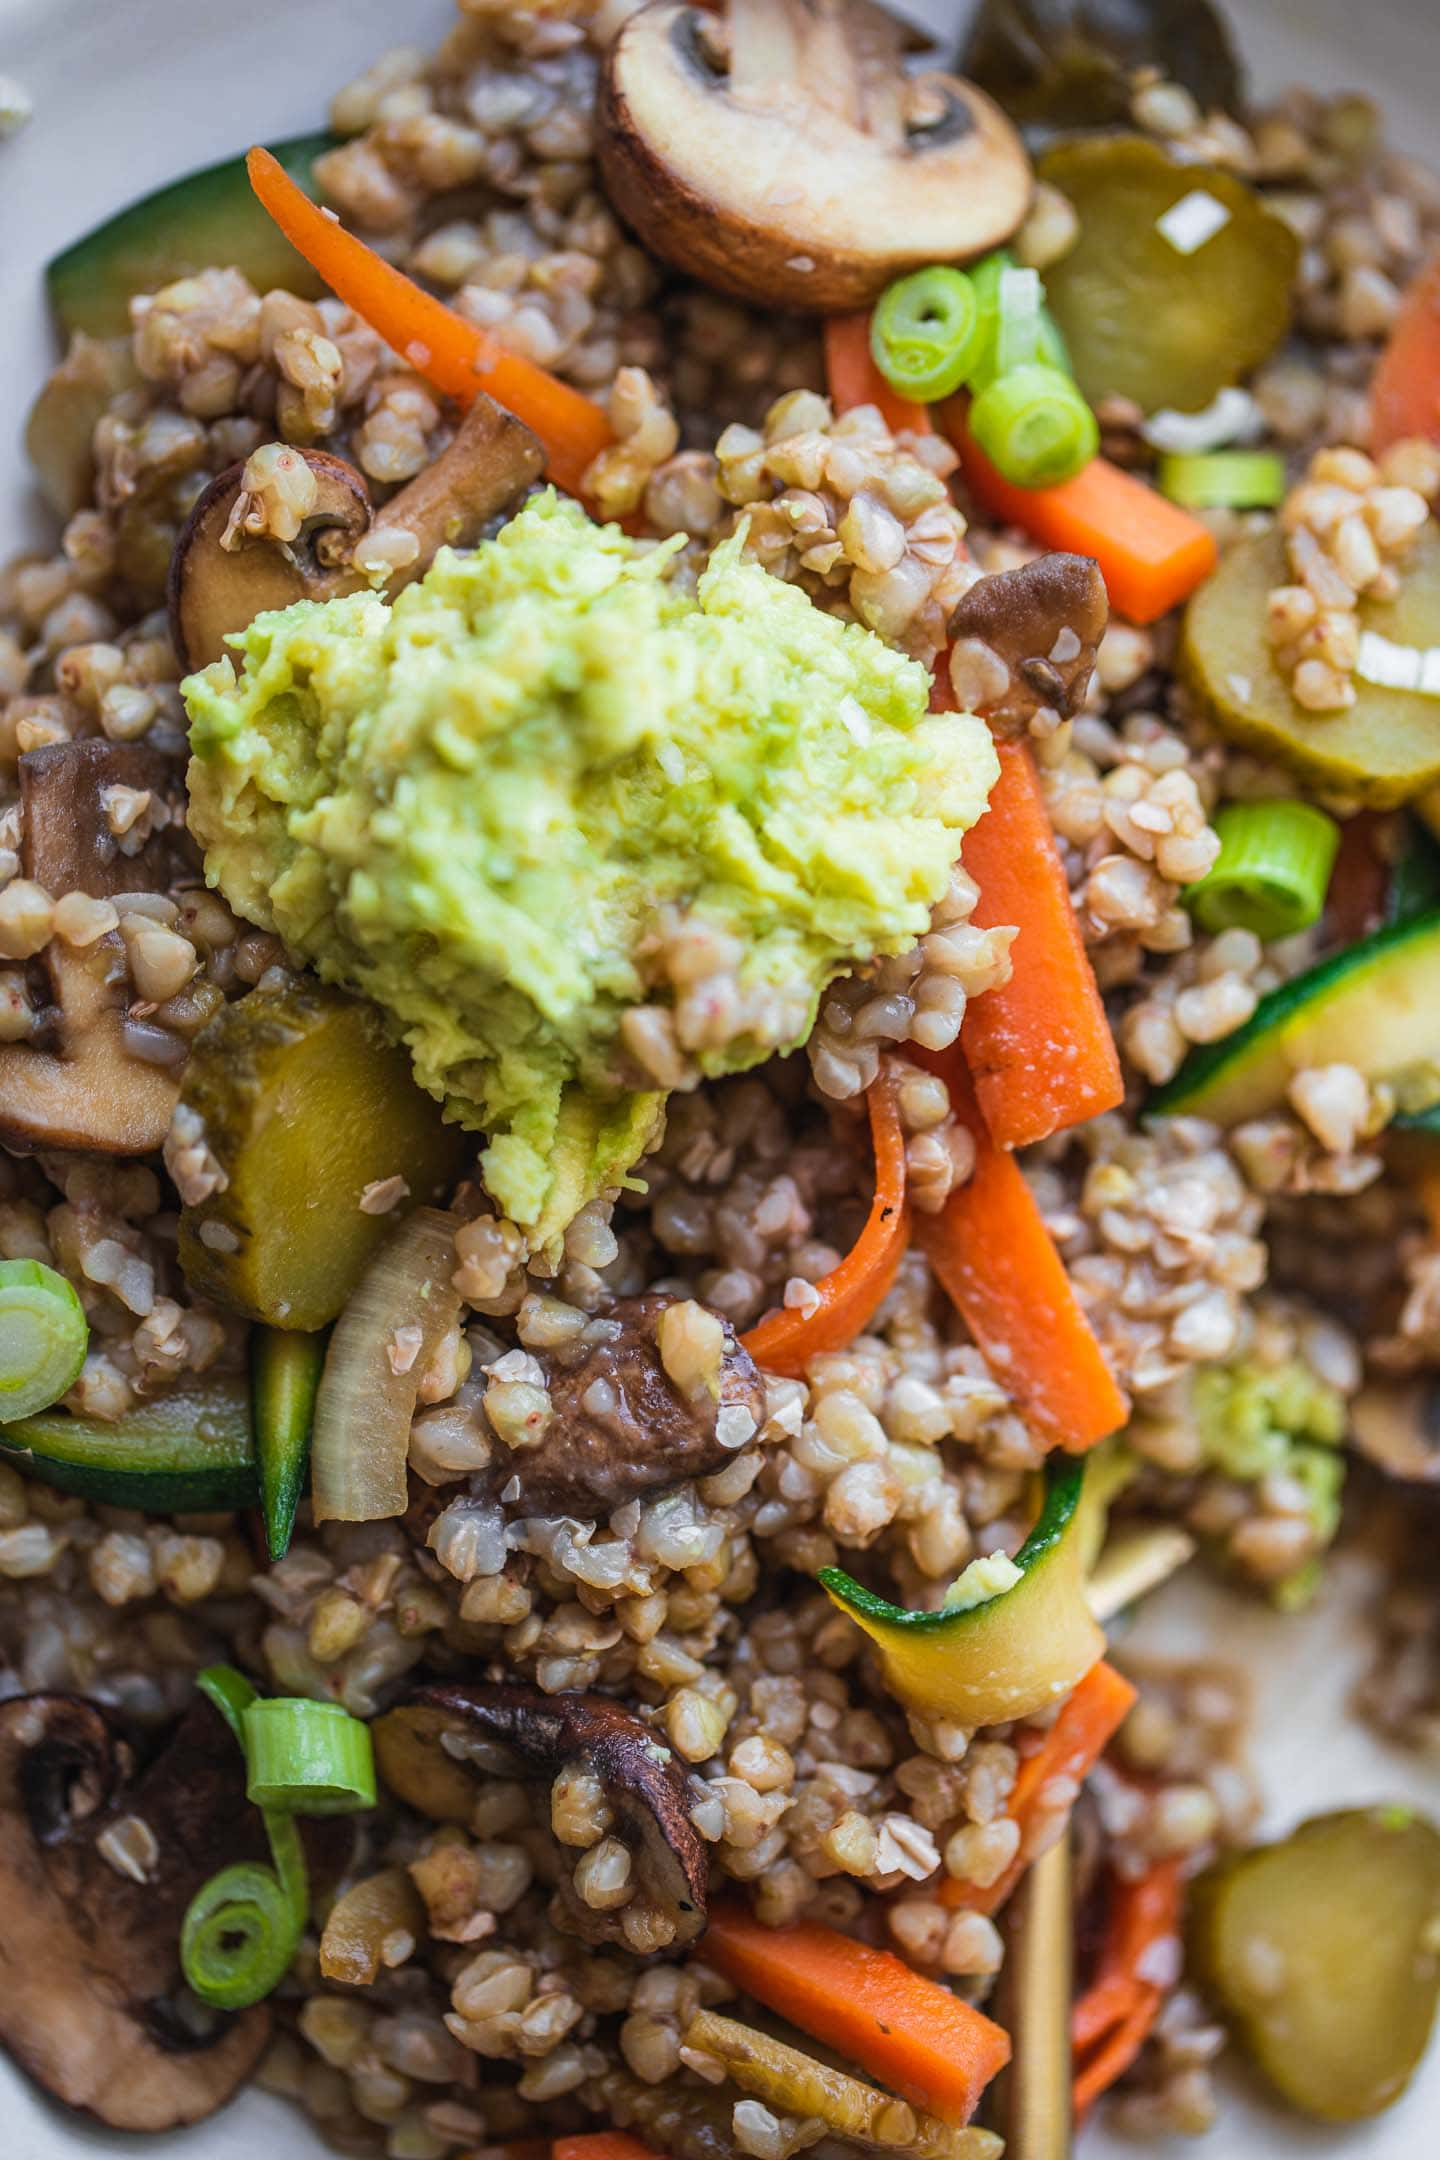 Closeup of buckwheat with vegetables and avocado